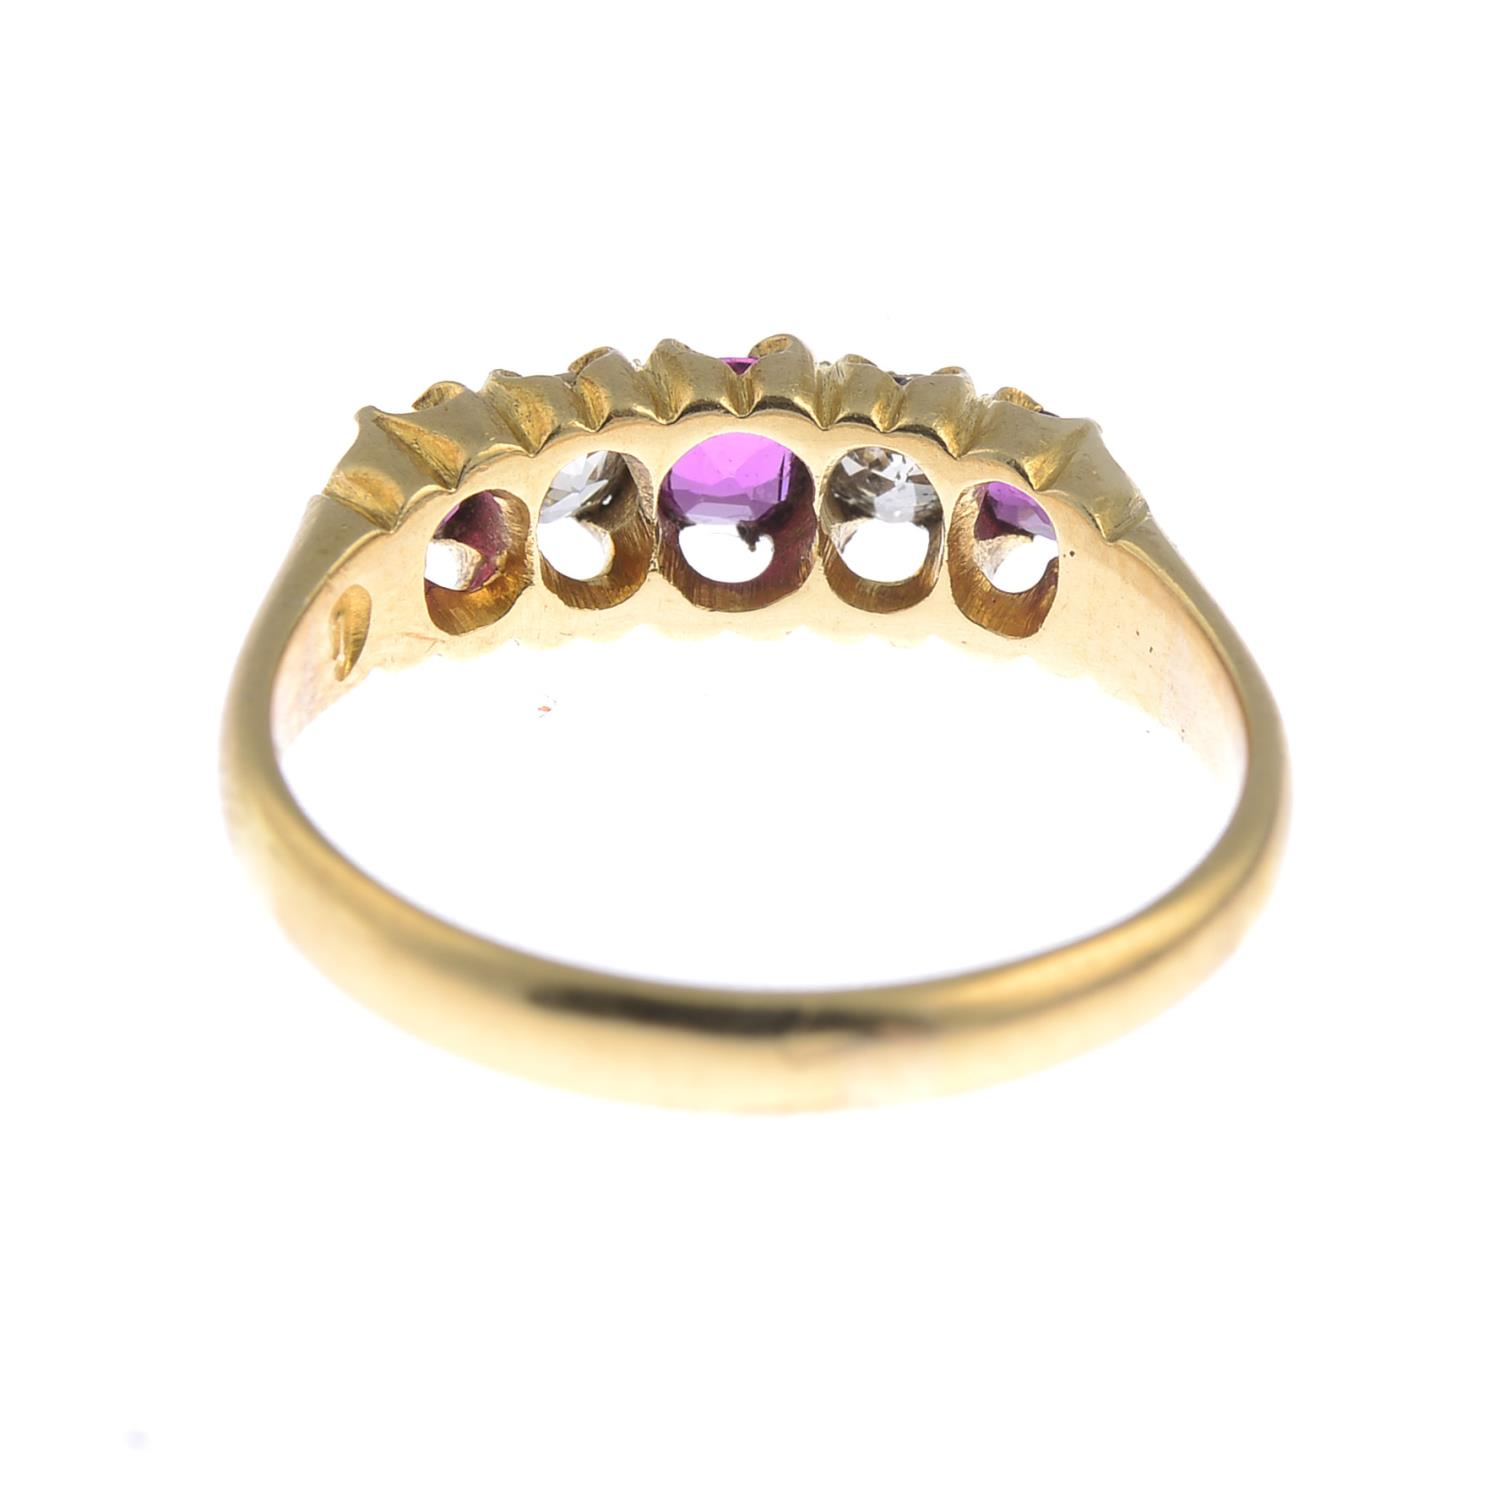 Lot 15 - A late Victorian18ct gold ruby and diamond five-stone ring.Estimated total diamond weight 0.30ct,